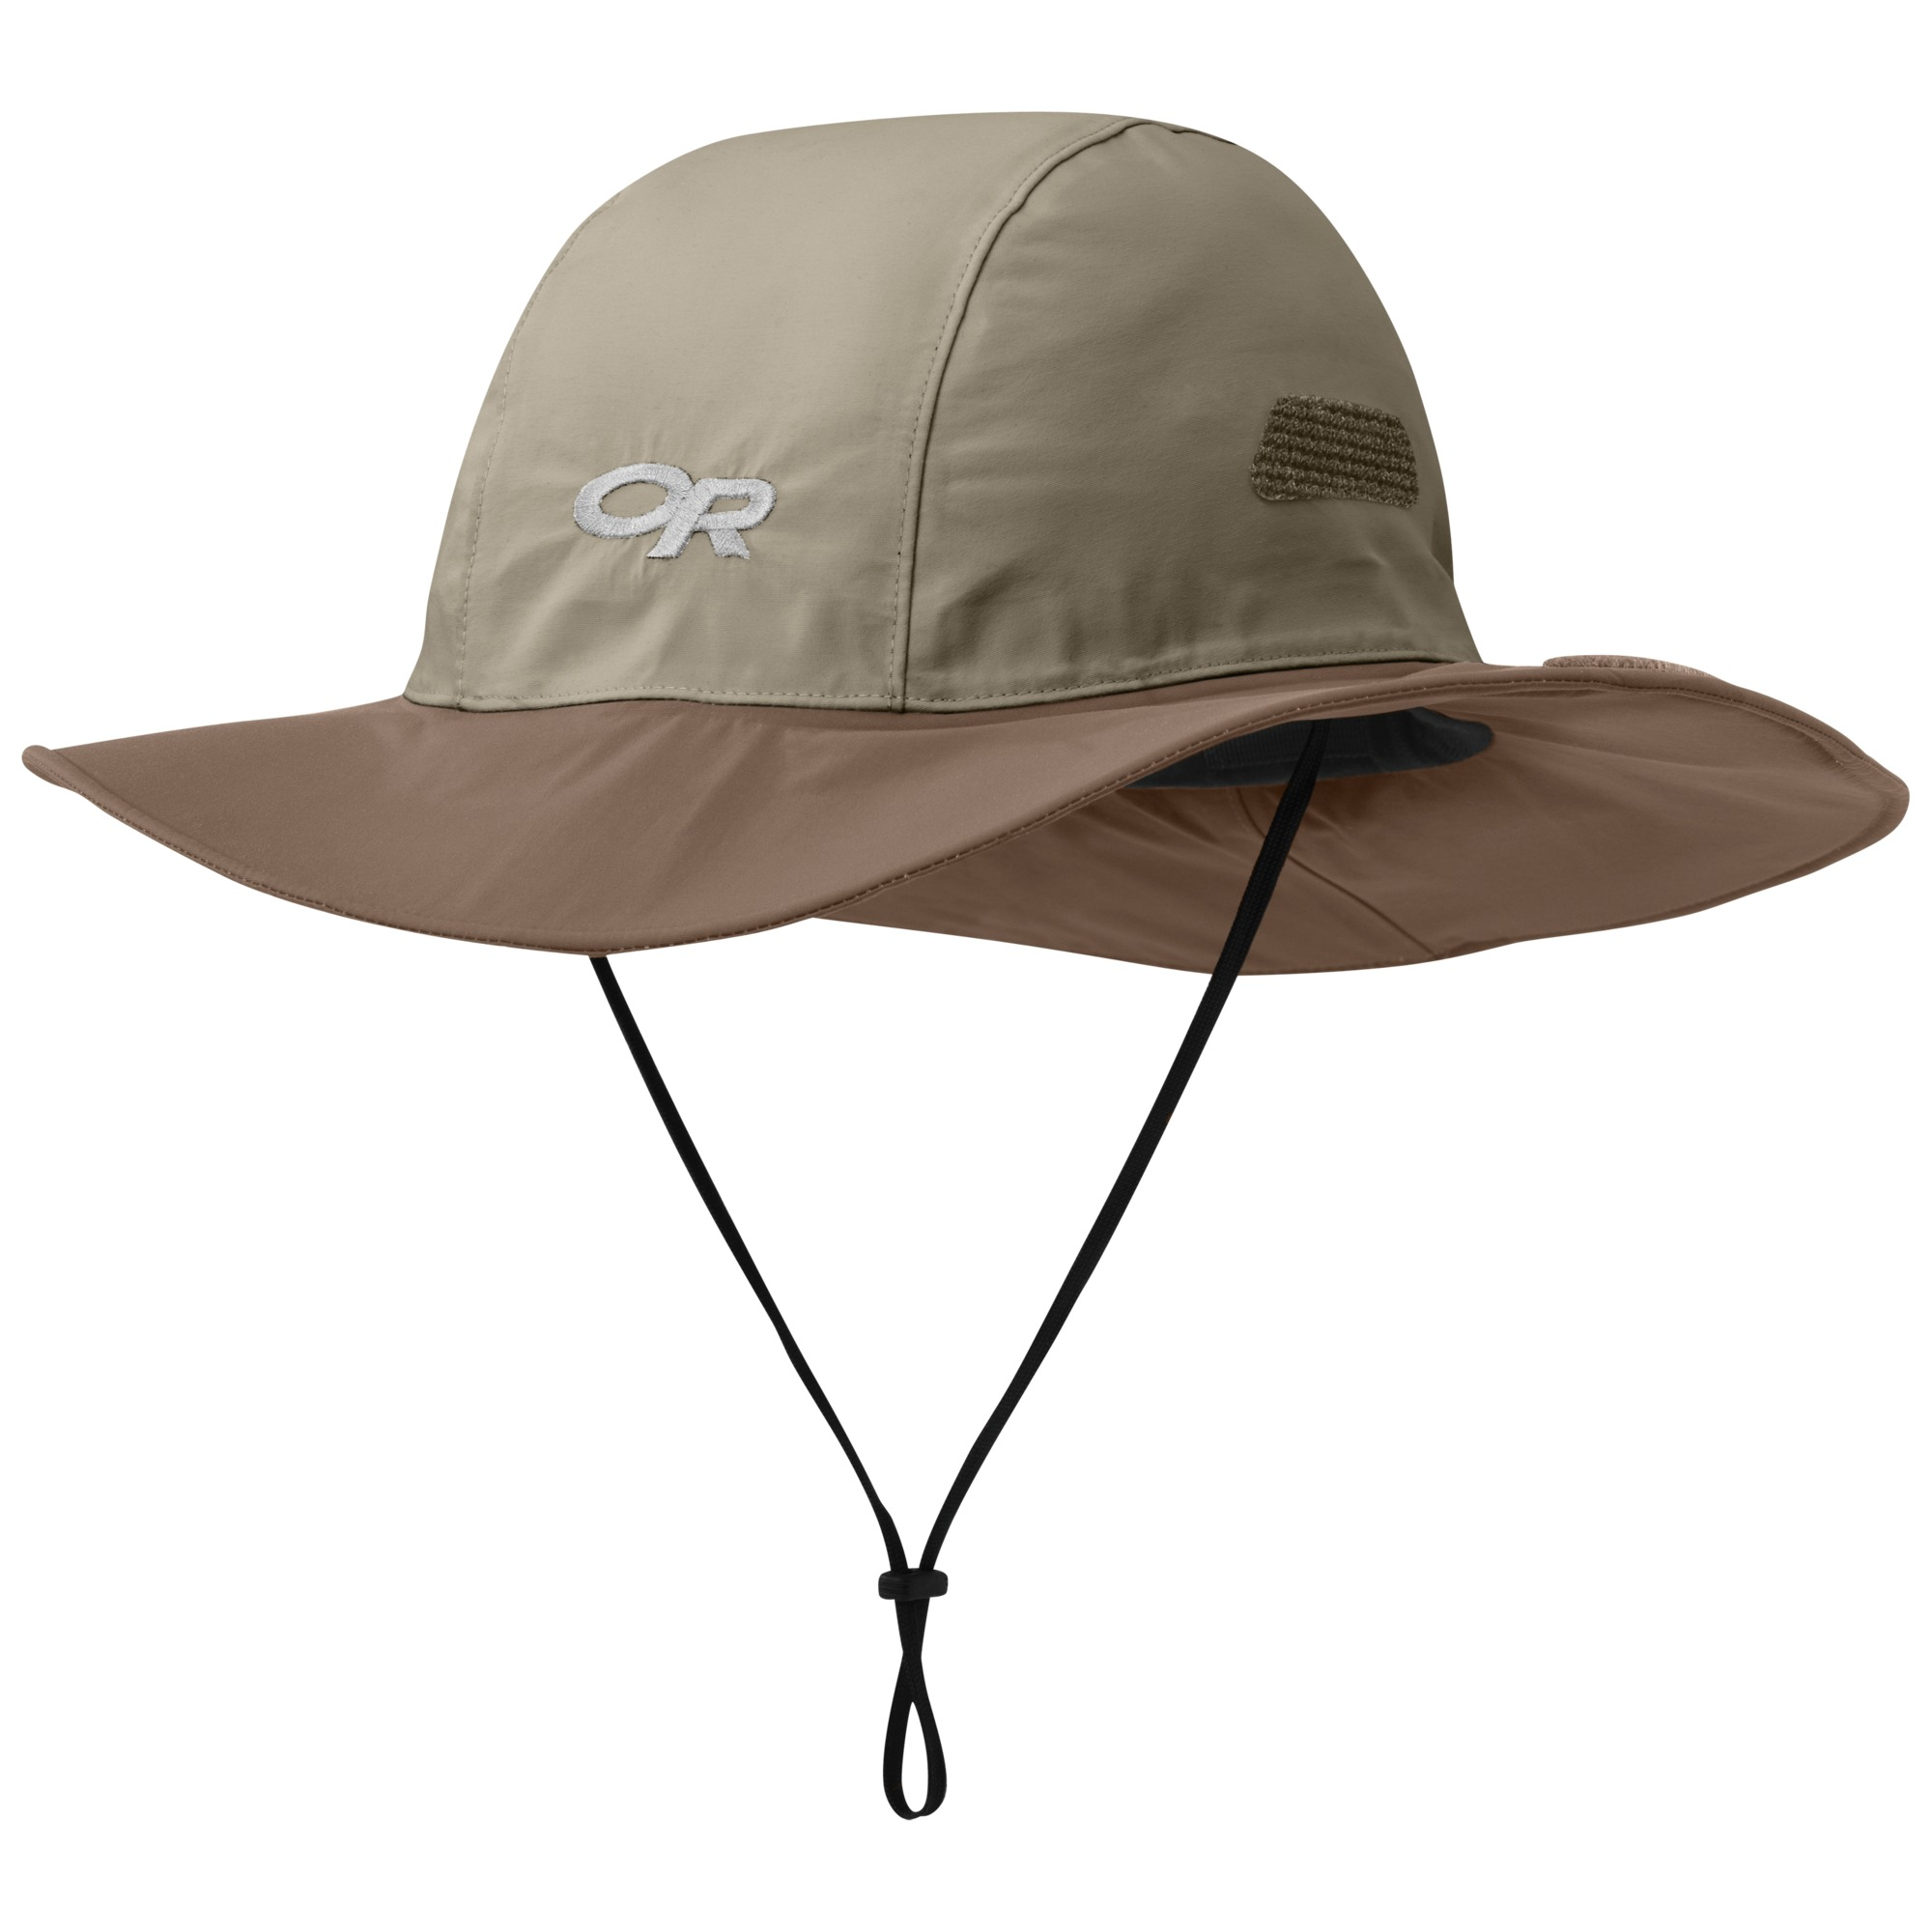 Outdoor Research - OR Seattle Sombrero - khaki/java - L 243505